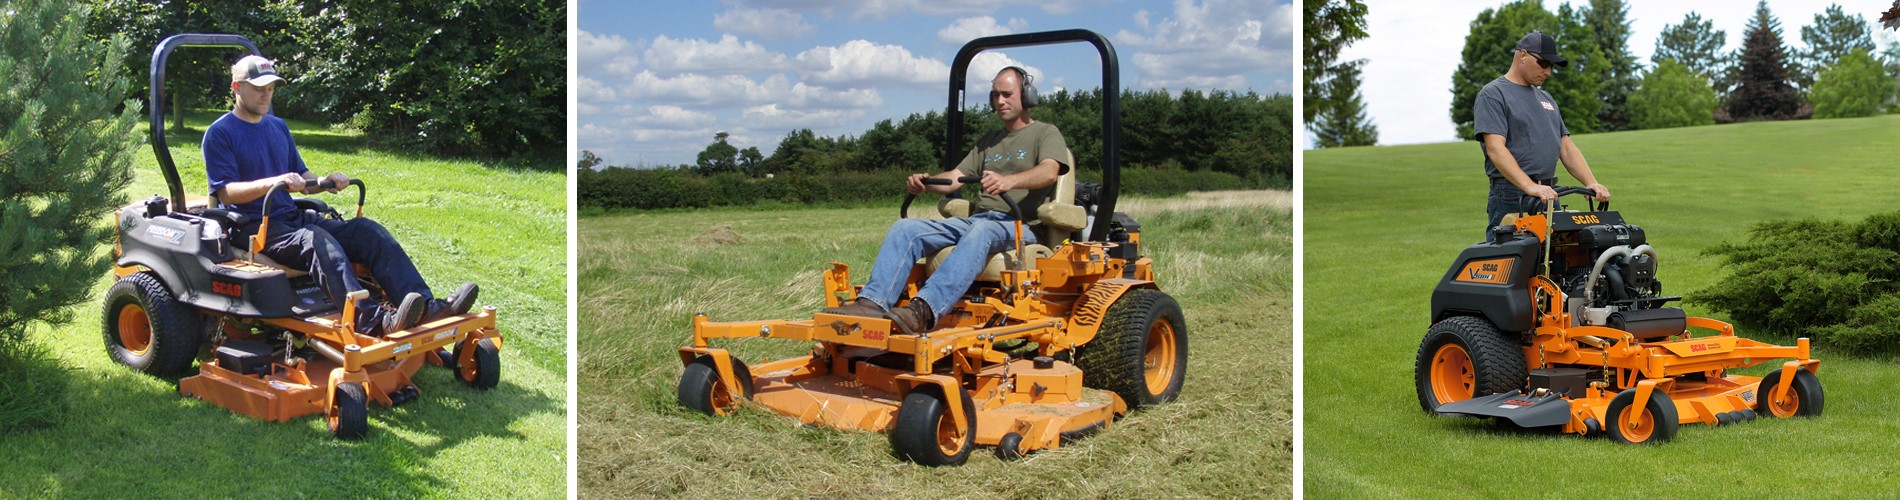 STM - Scag Mowers, Rotary Mowers, Professional Walk Behind, Ride on